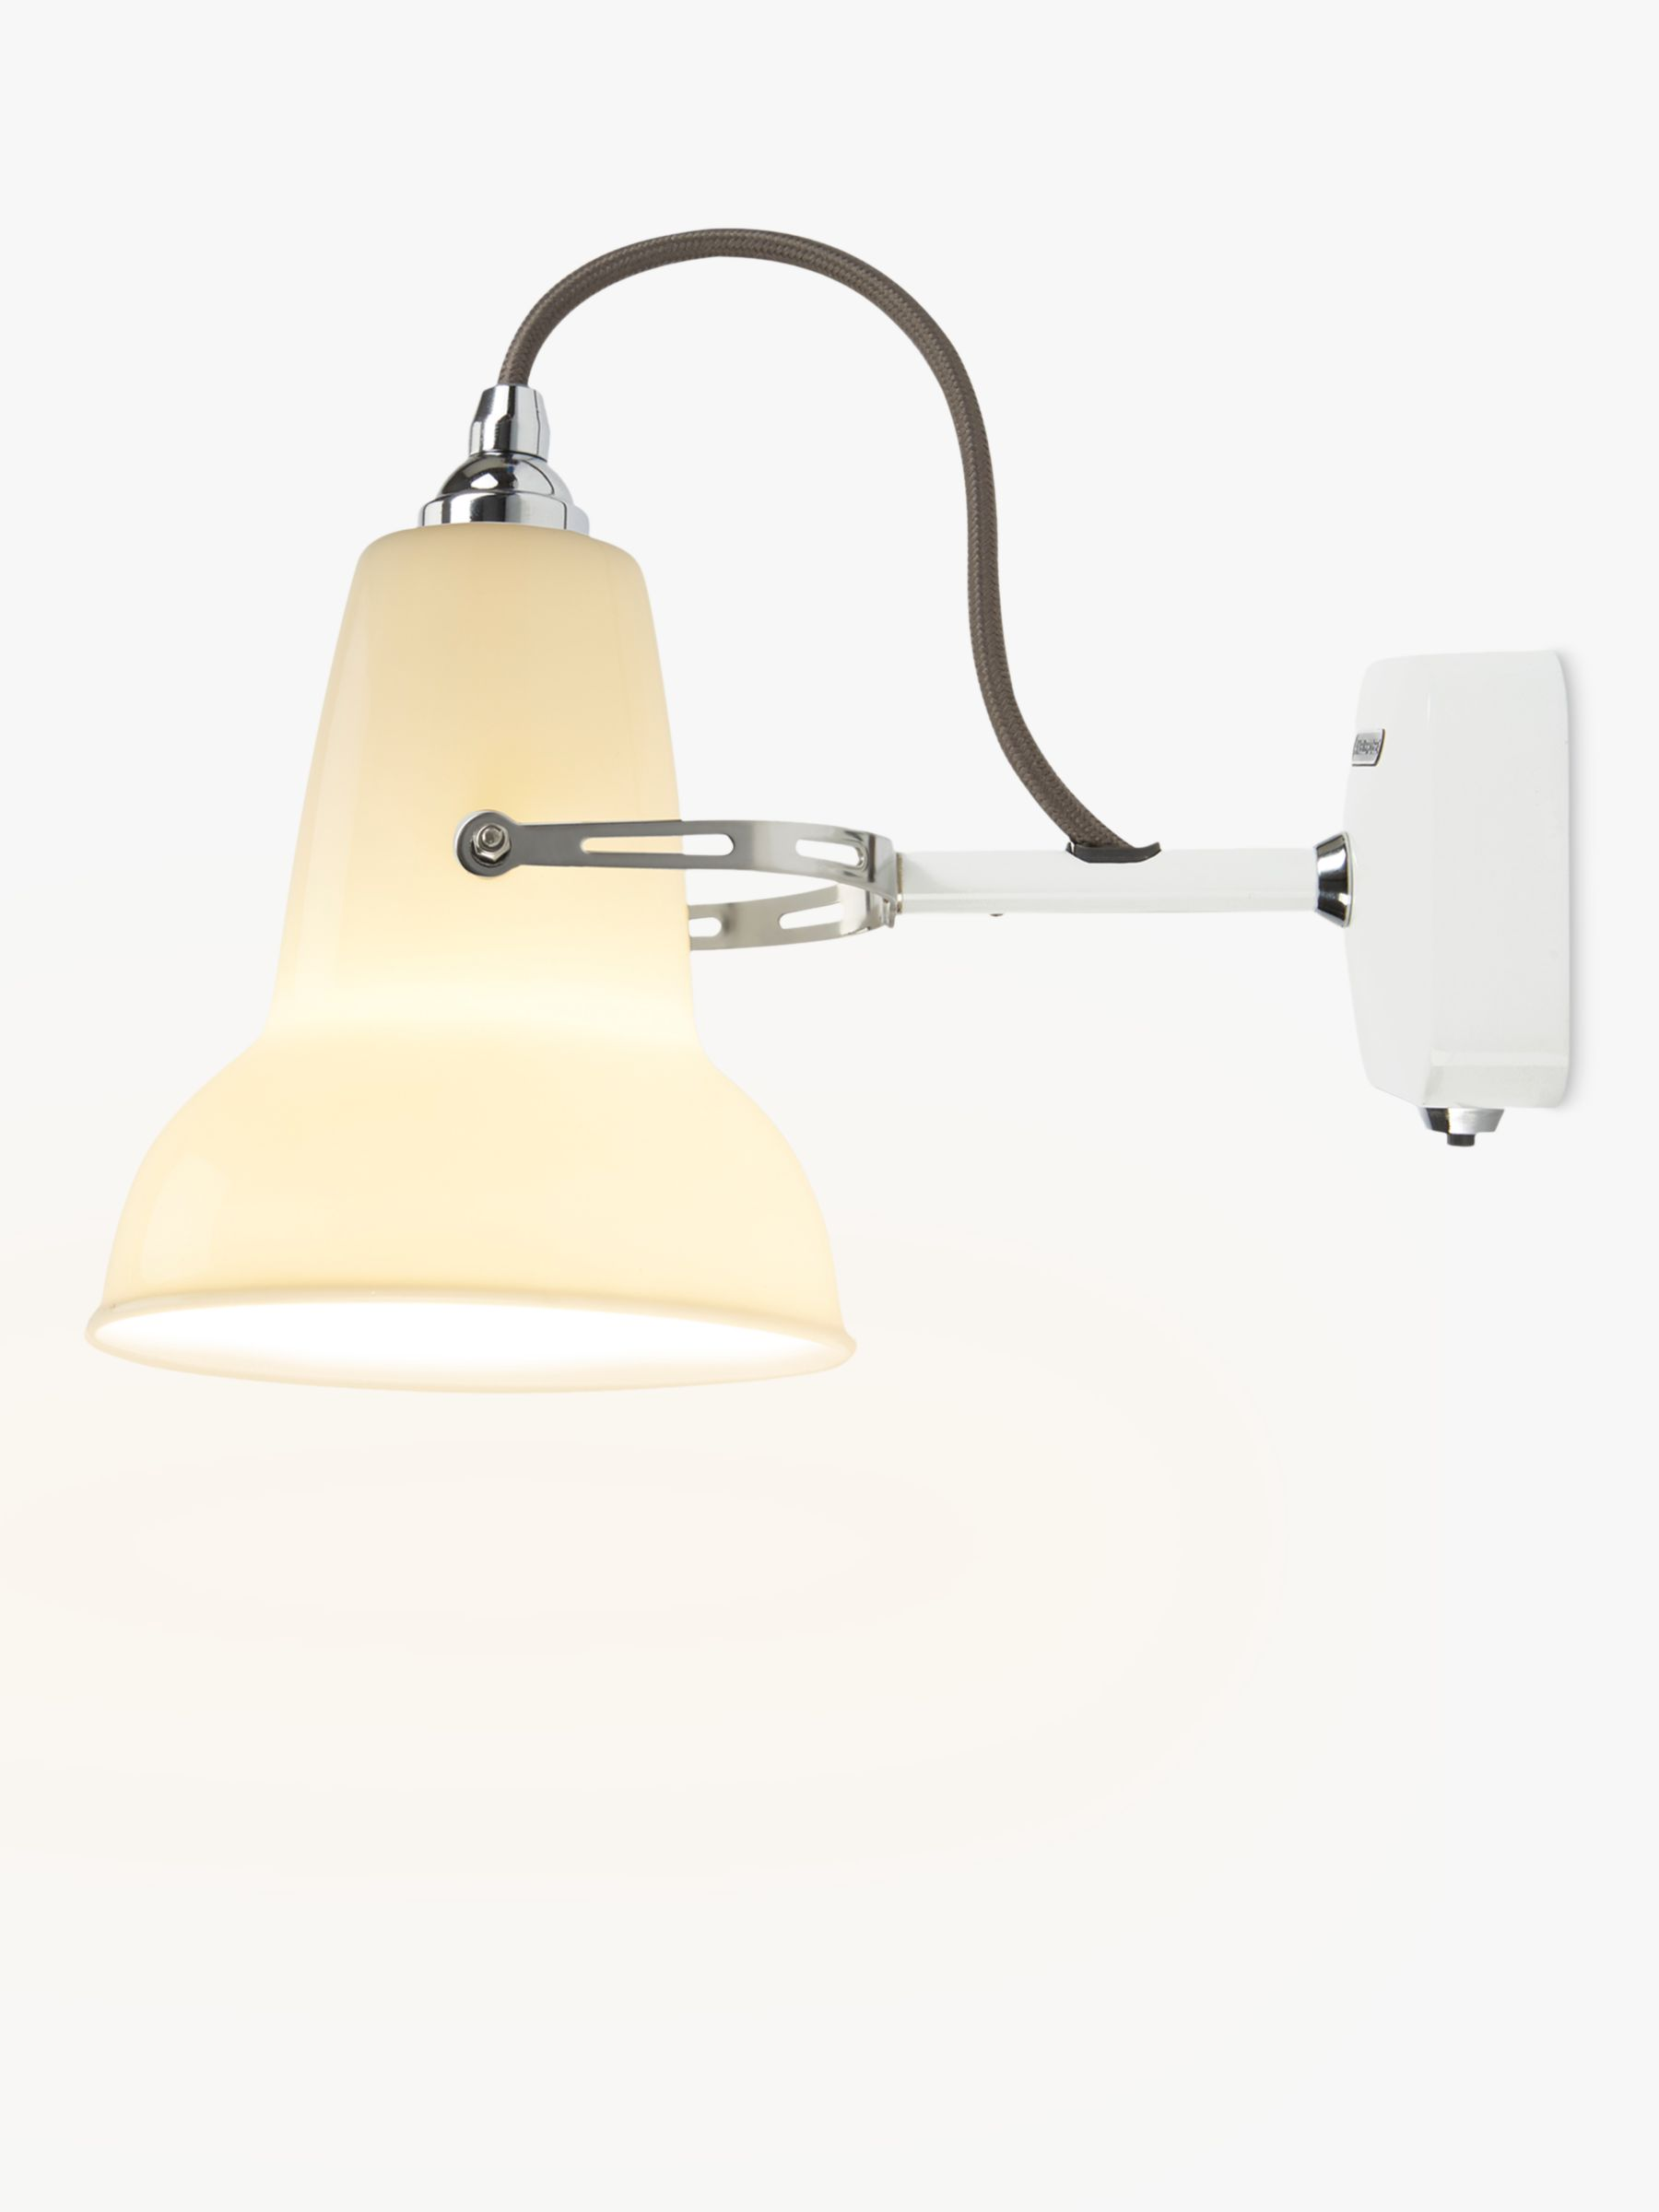 Anglepoise Anglepoise 1227 Mini Ceramic Wall Light, White